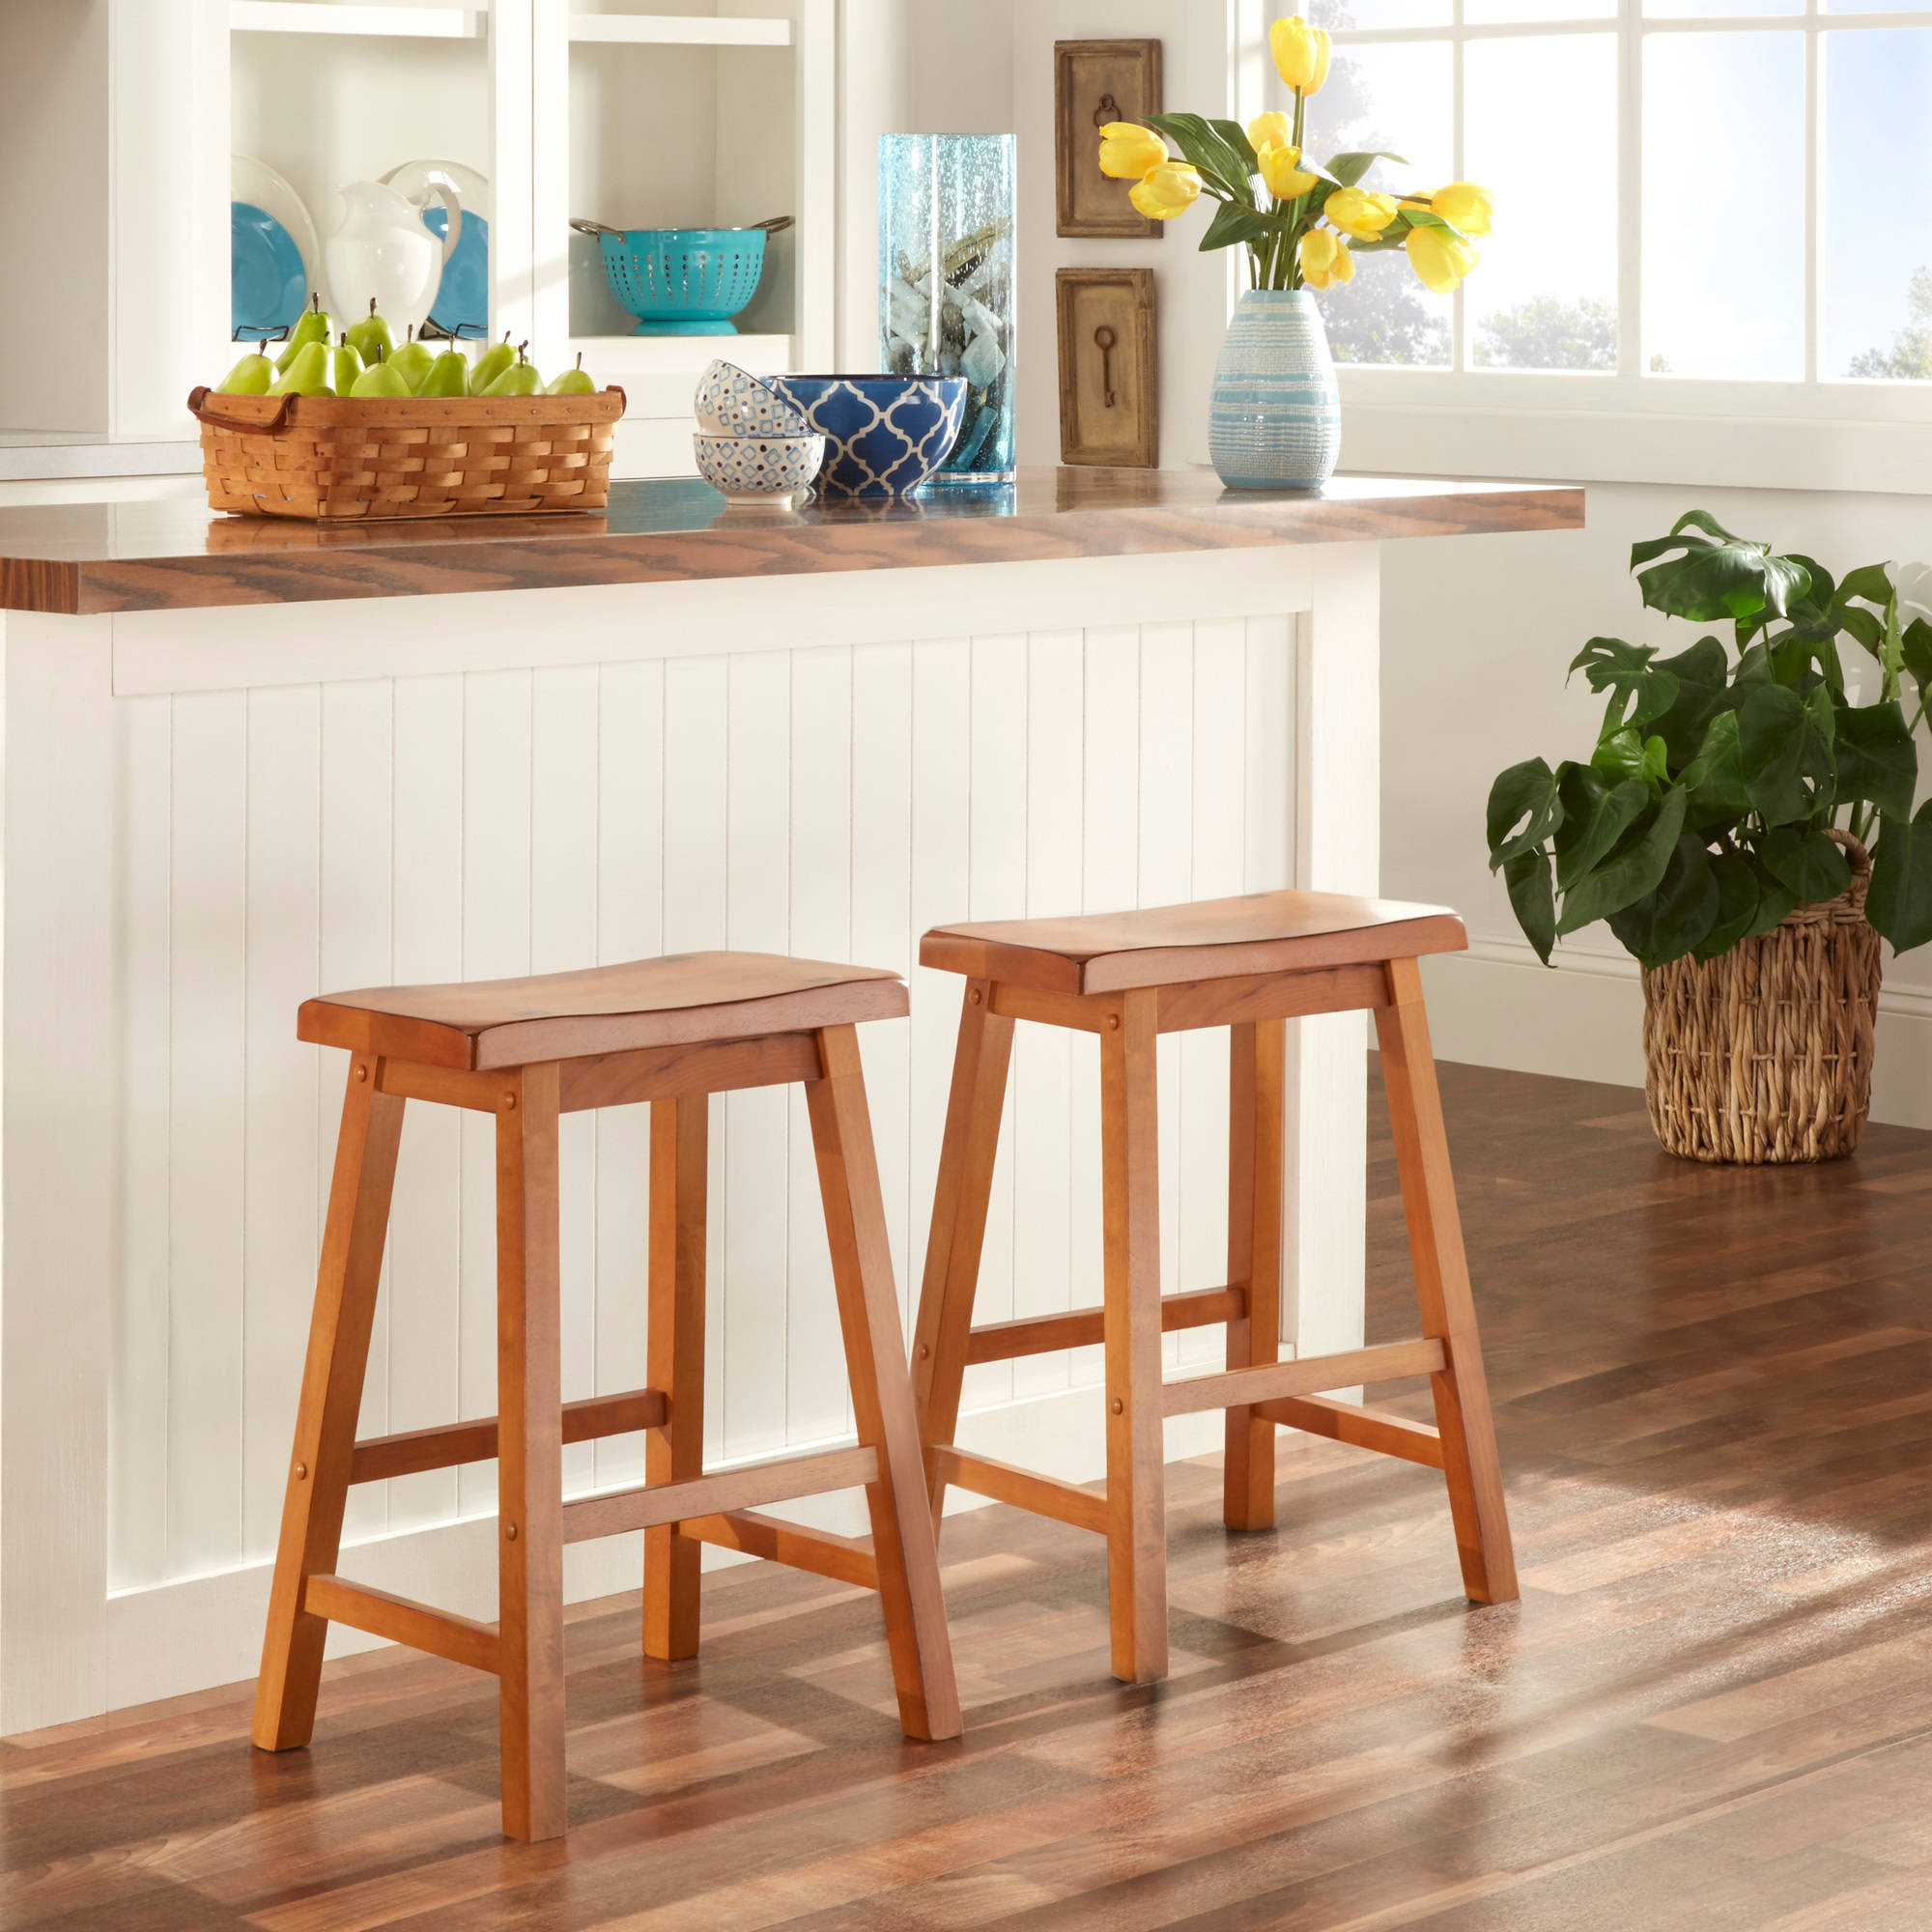 "Ashby Counter Stools 24"", Set of 2, Oak"